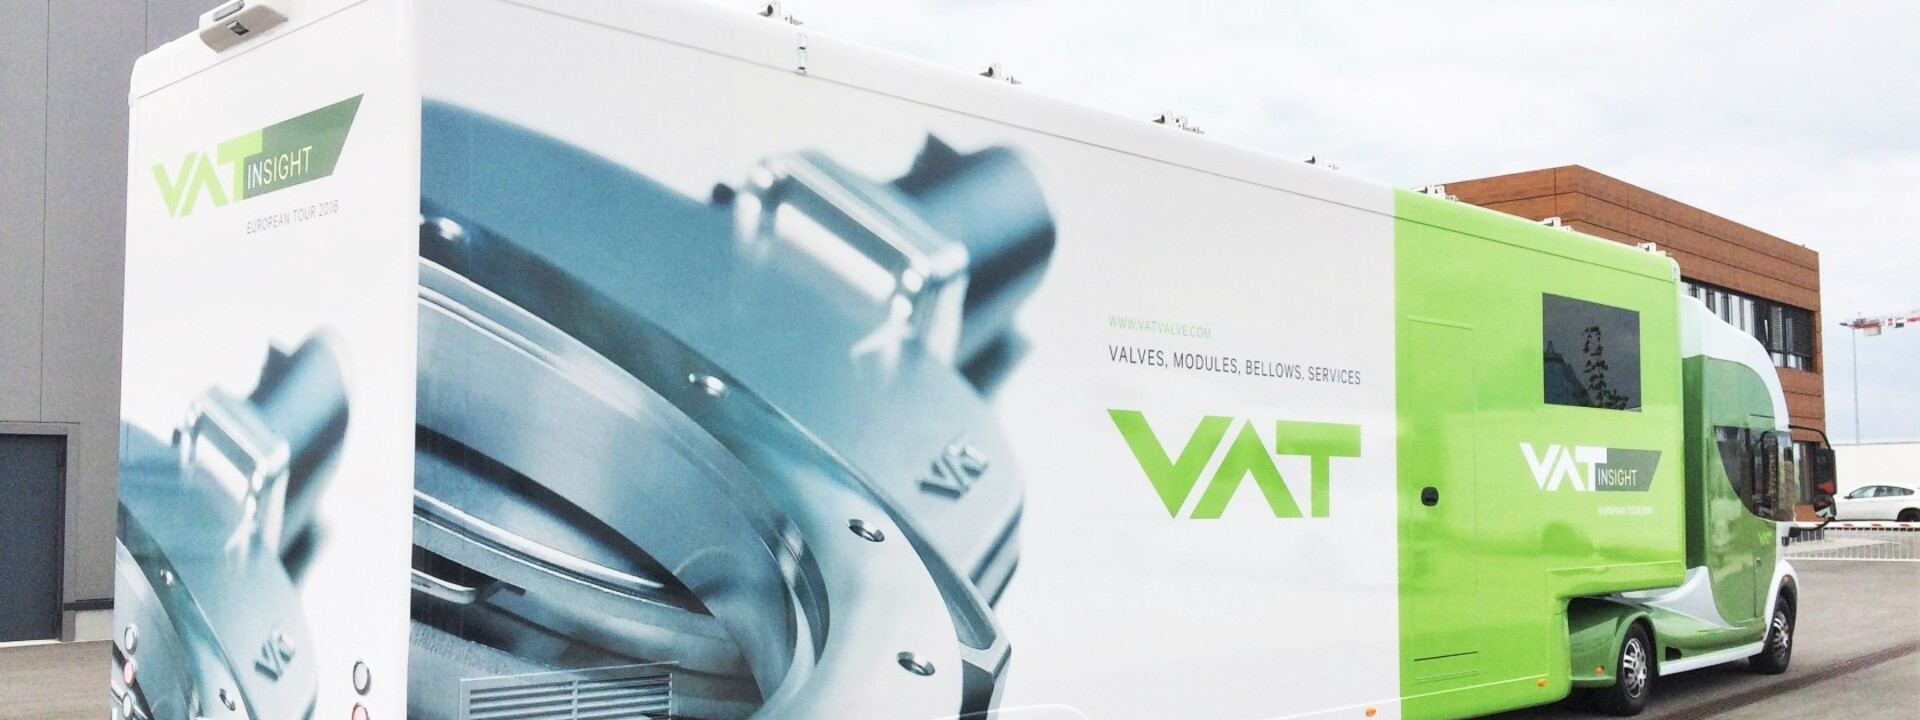 4-vat-promotiontruck.jpg